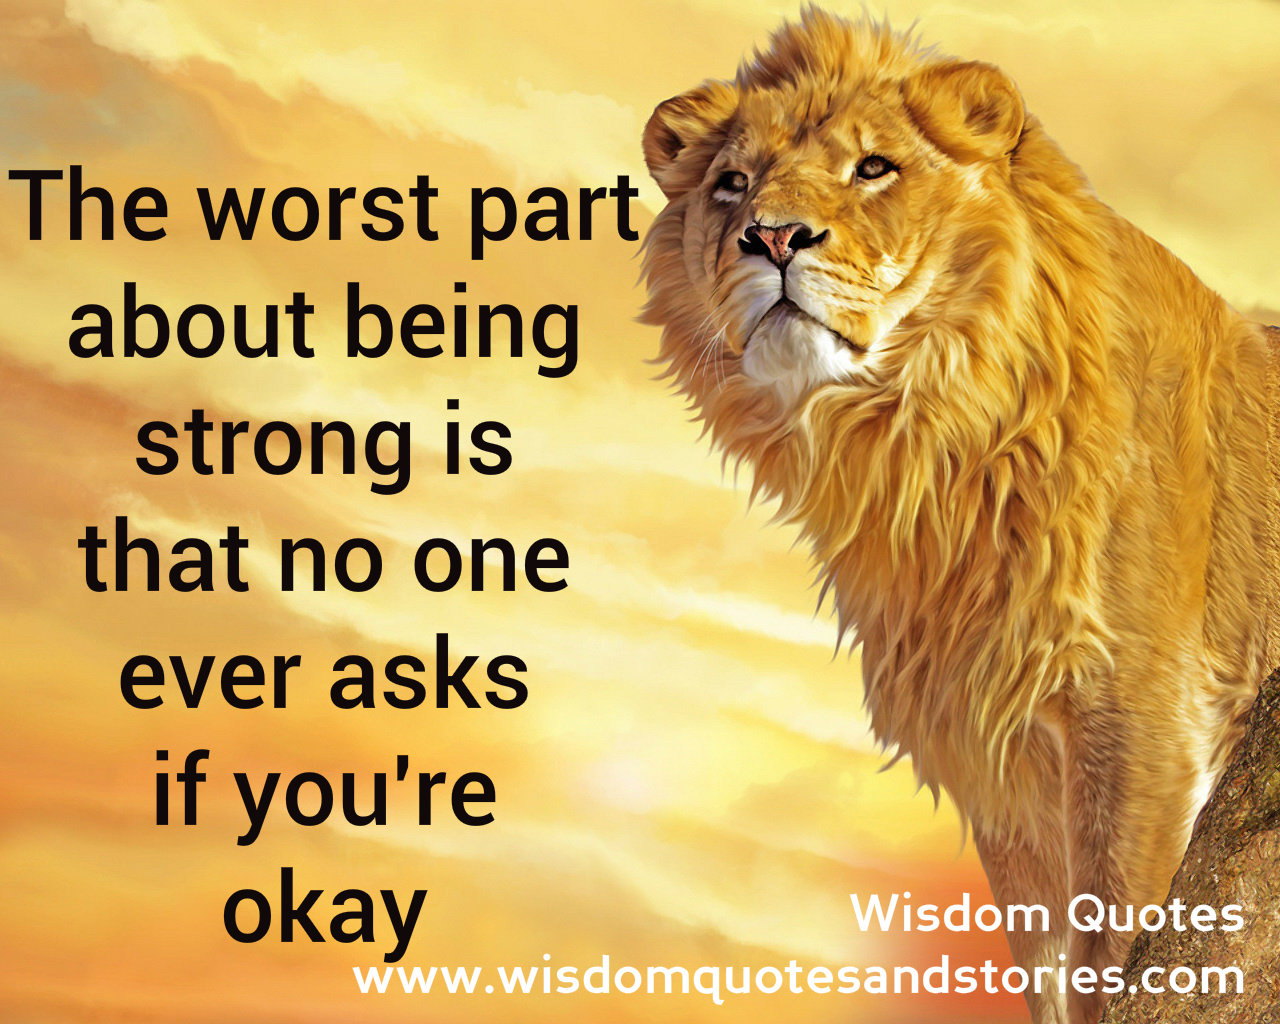 The worst part about being strong is that no one ever asks you if you are okay